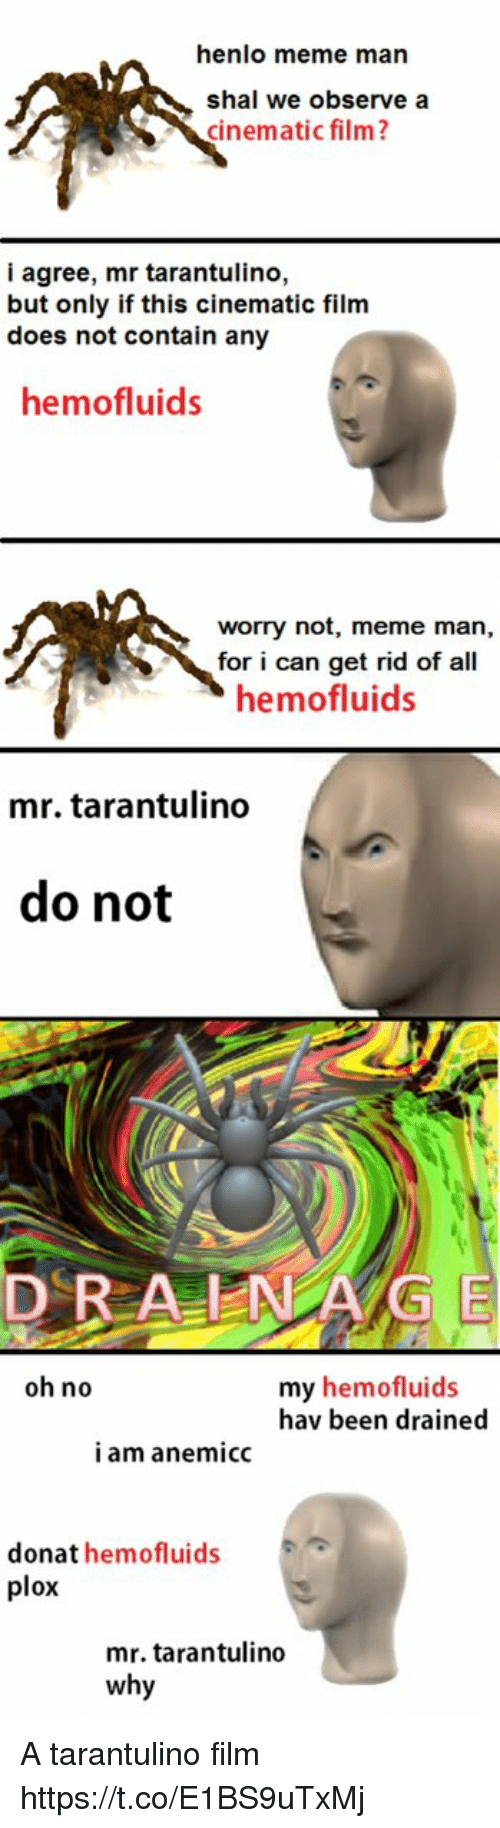 Donat: henlo meme man  shal we observe a  cinematic film?  i agree, mr tarantulino,  but only if this cinematic film  does not contain any  hemofluids  worry not, meme man,  for i can get rid of all  hemofluids  mr. tarantulino  do not  DRA NG E  oh no  my hemofluids  hav been drained  i am anemicc  donat hemofluids  plox  mr. tarantulino  why A tarantulino film https://t.co/E1BS9uTxMj